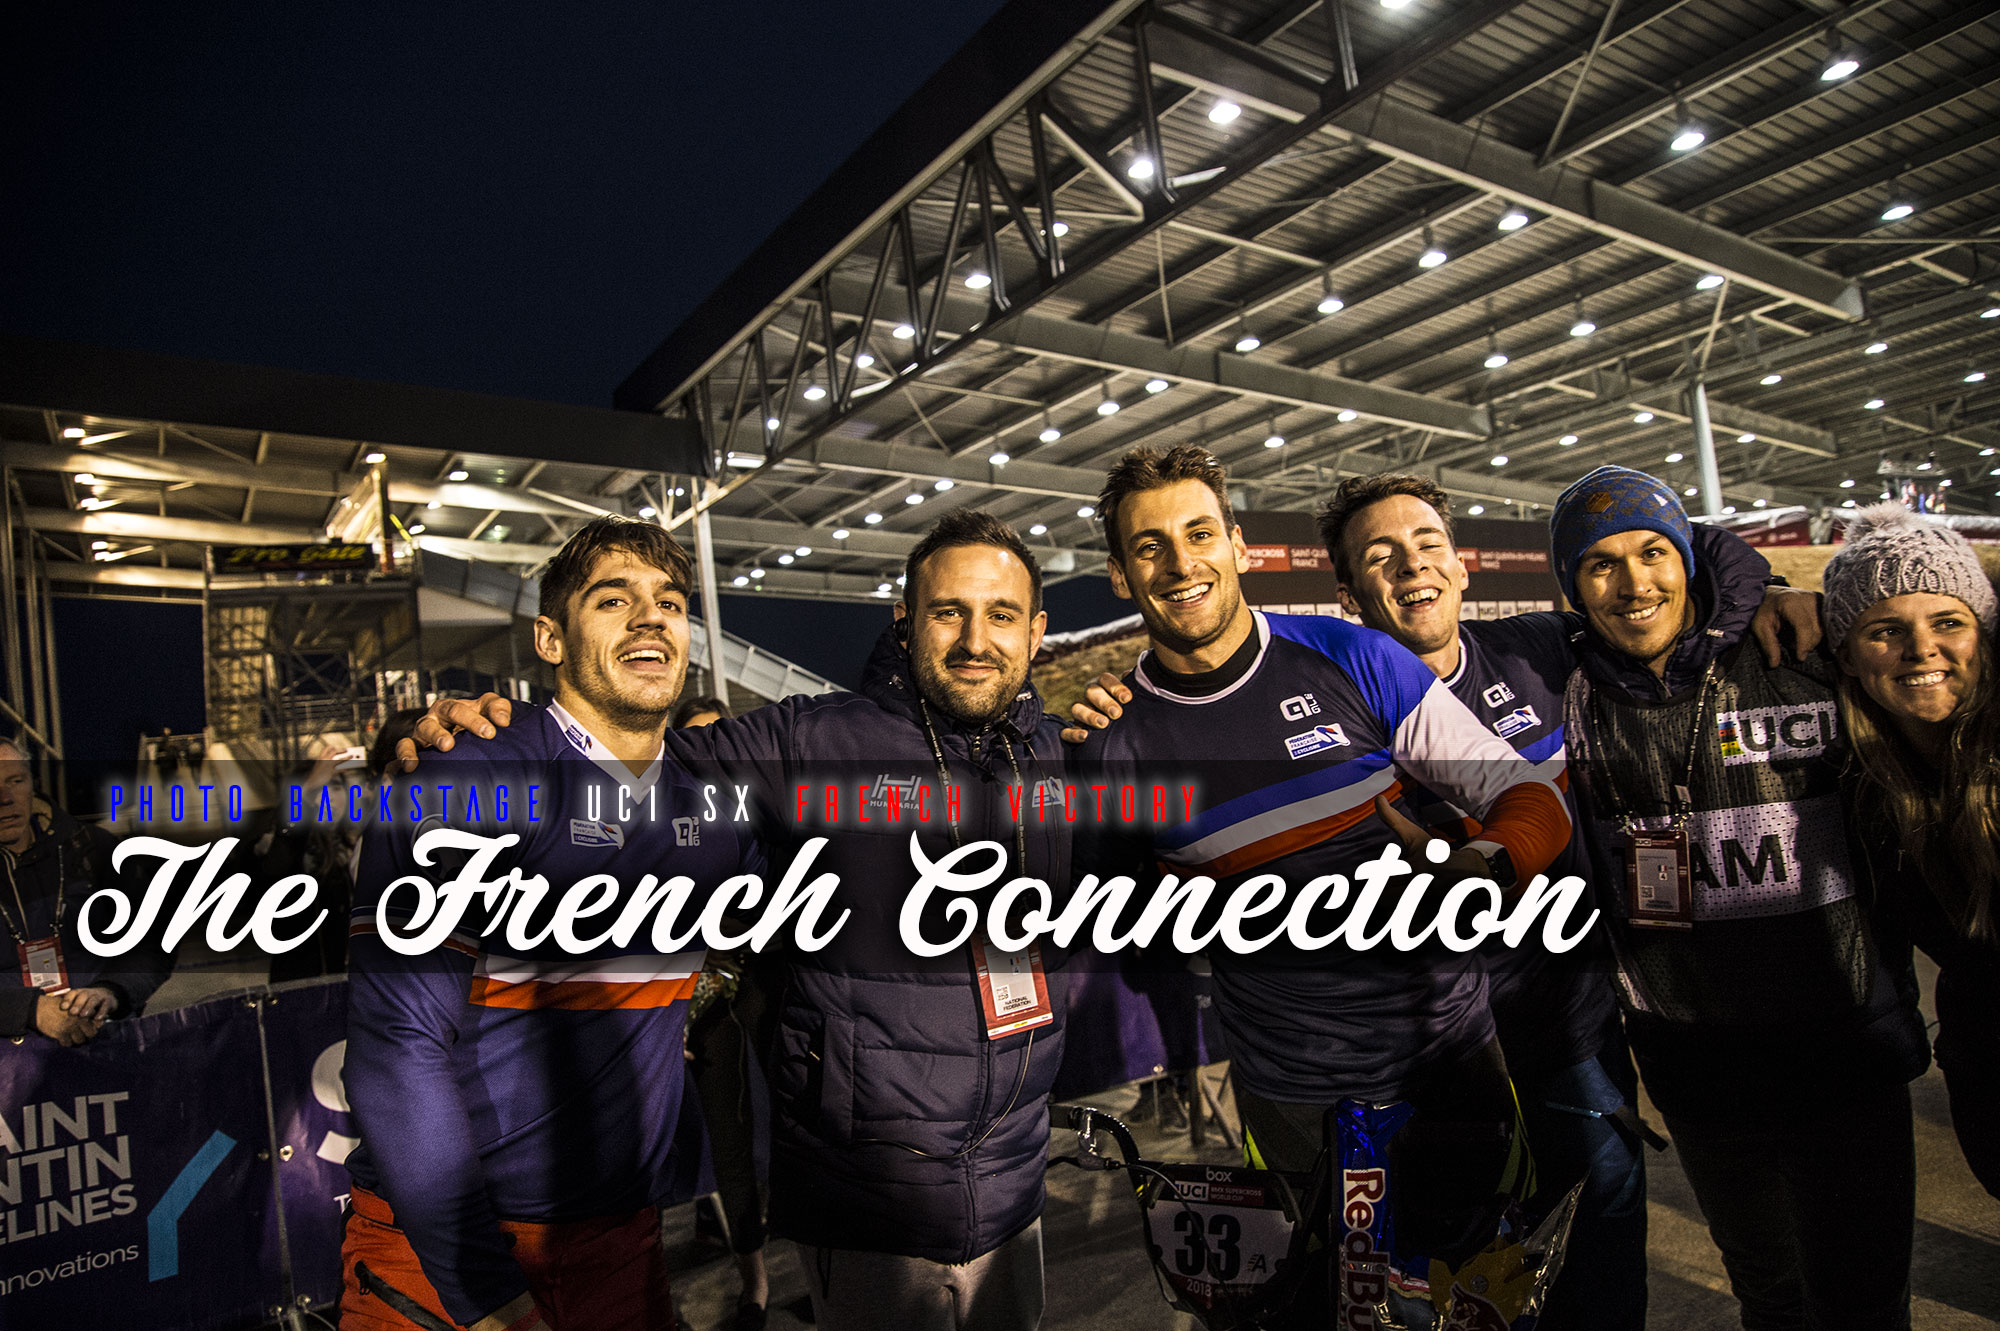 The French Connection: La victoire Française à SQY en images